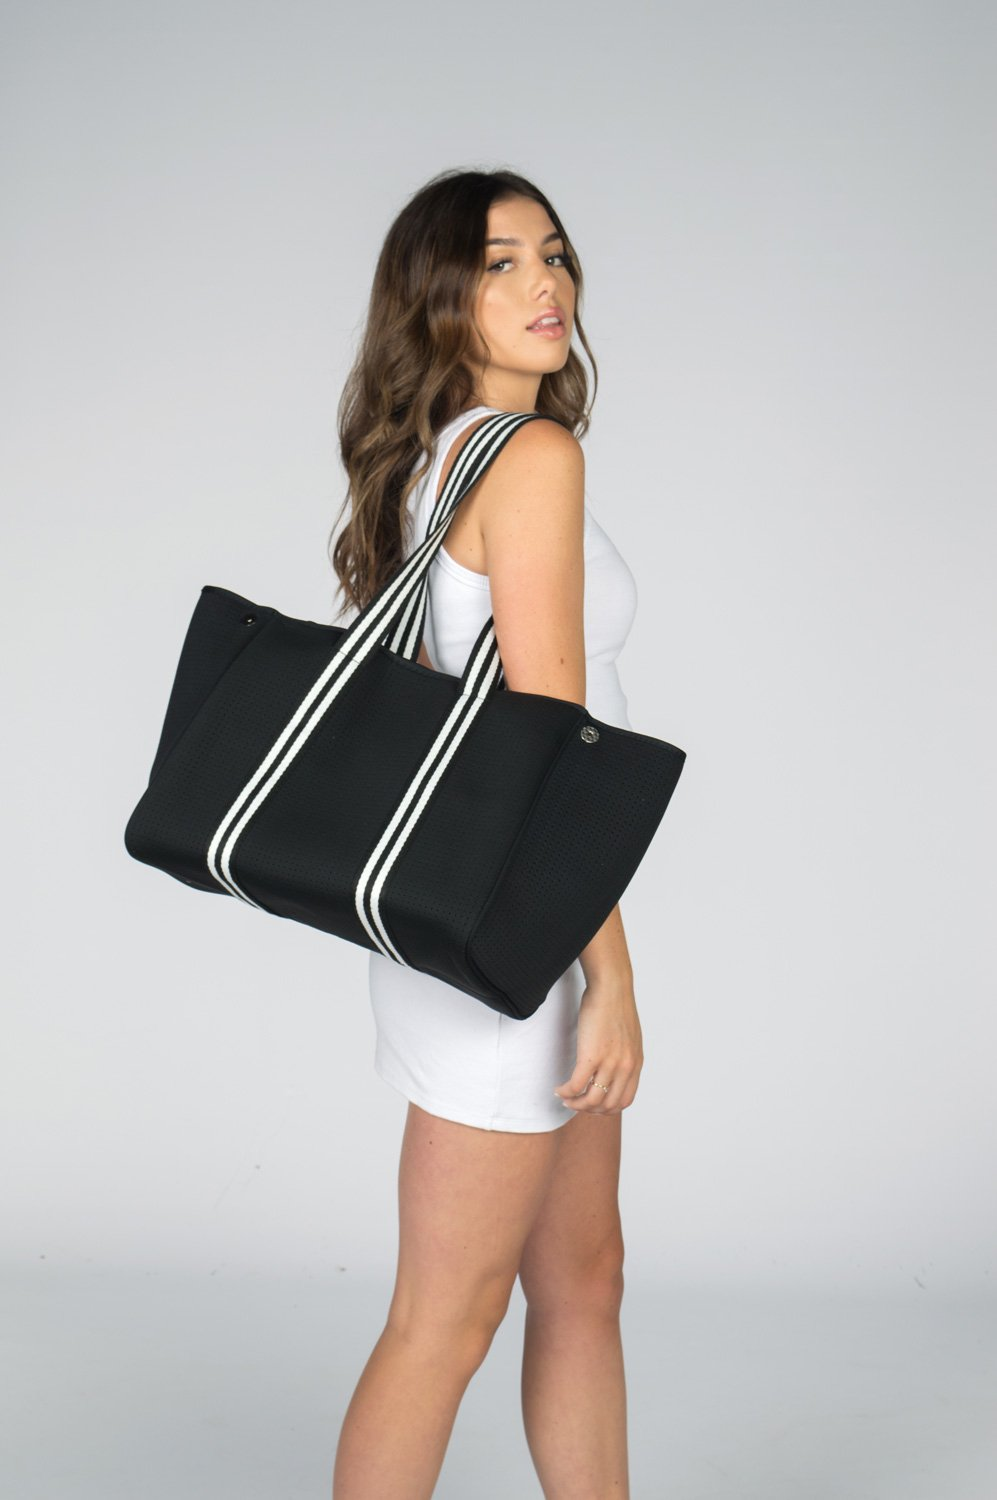 Aria Black Tote Bag by Neoprene Bags